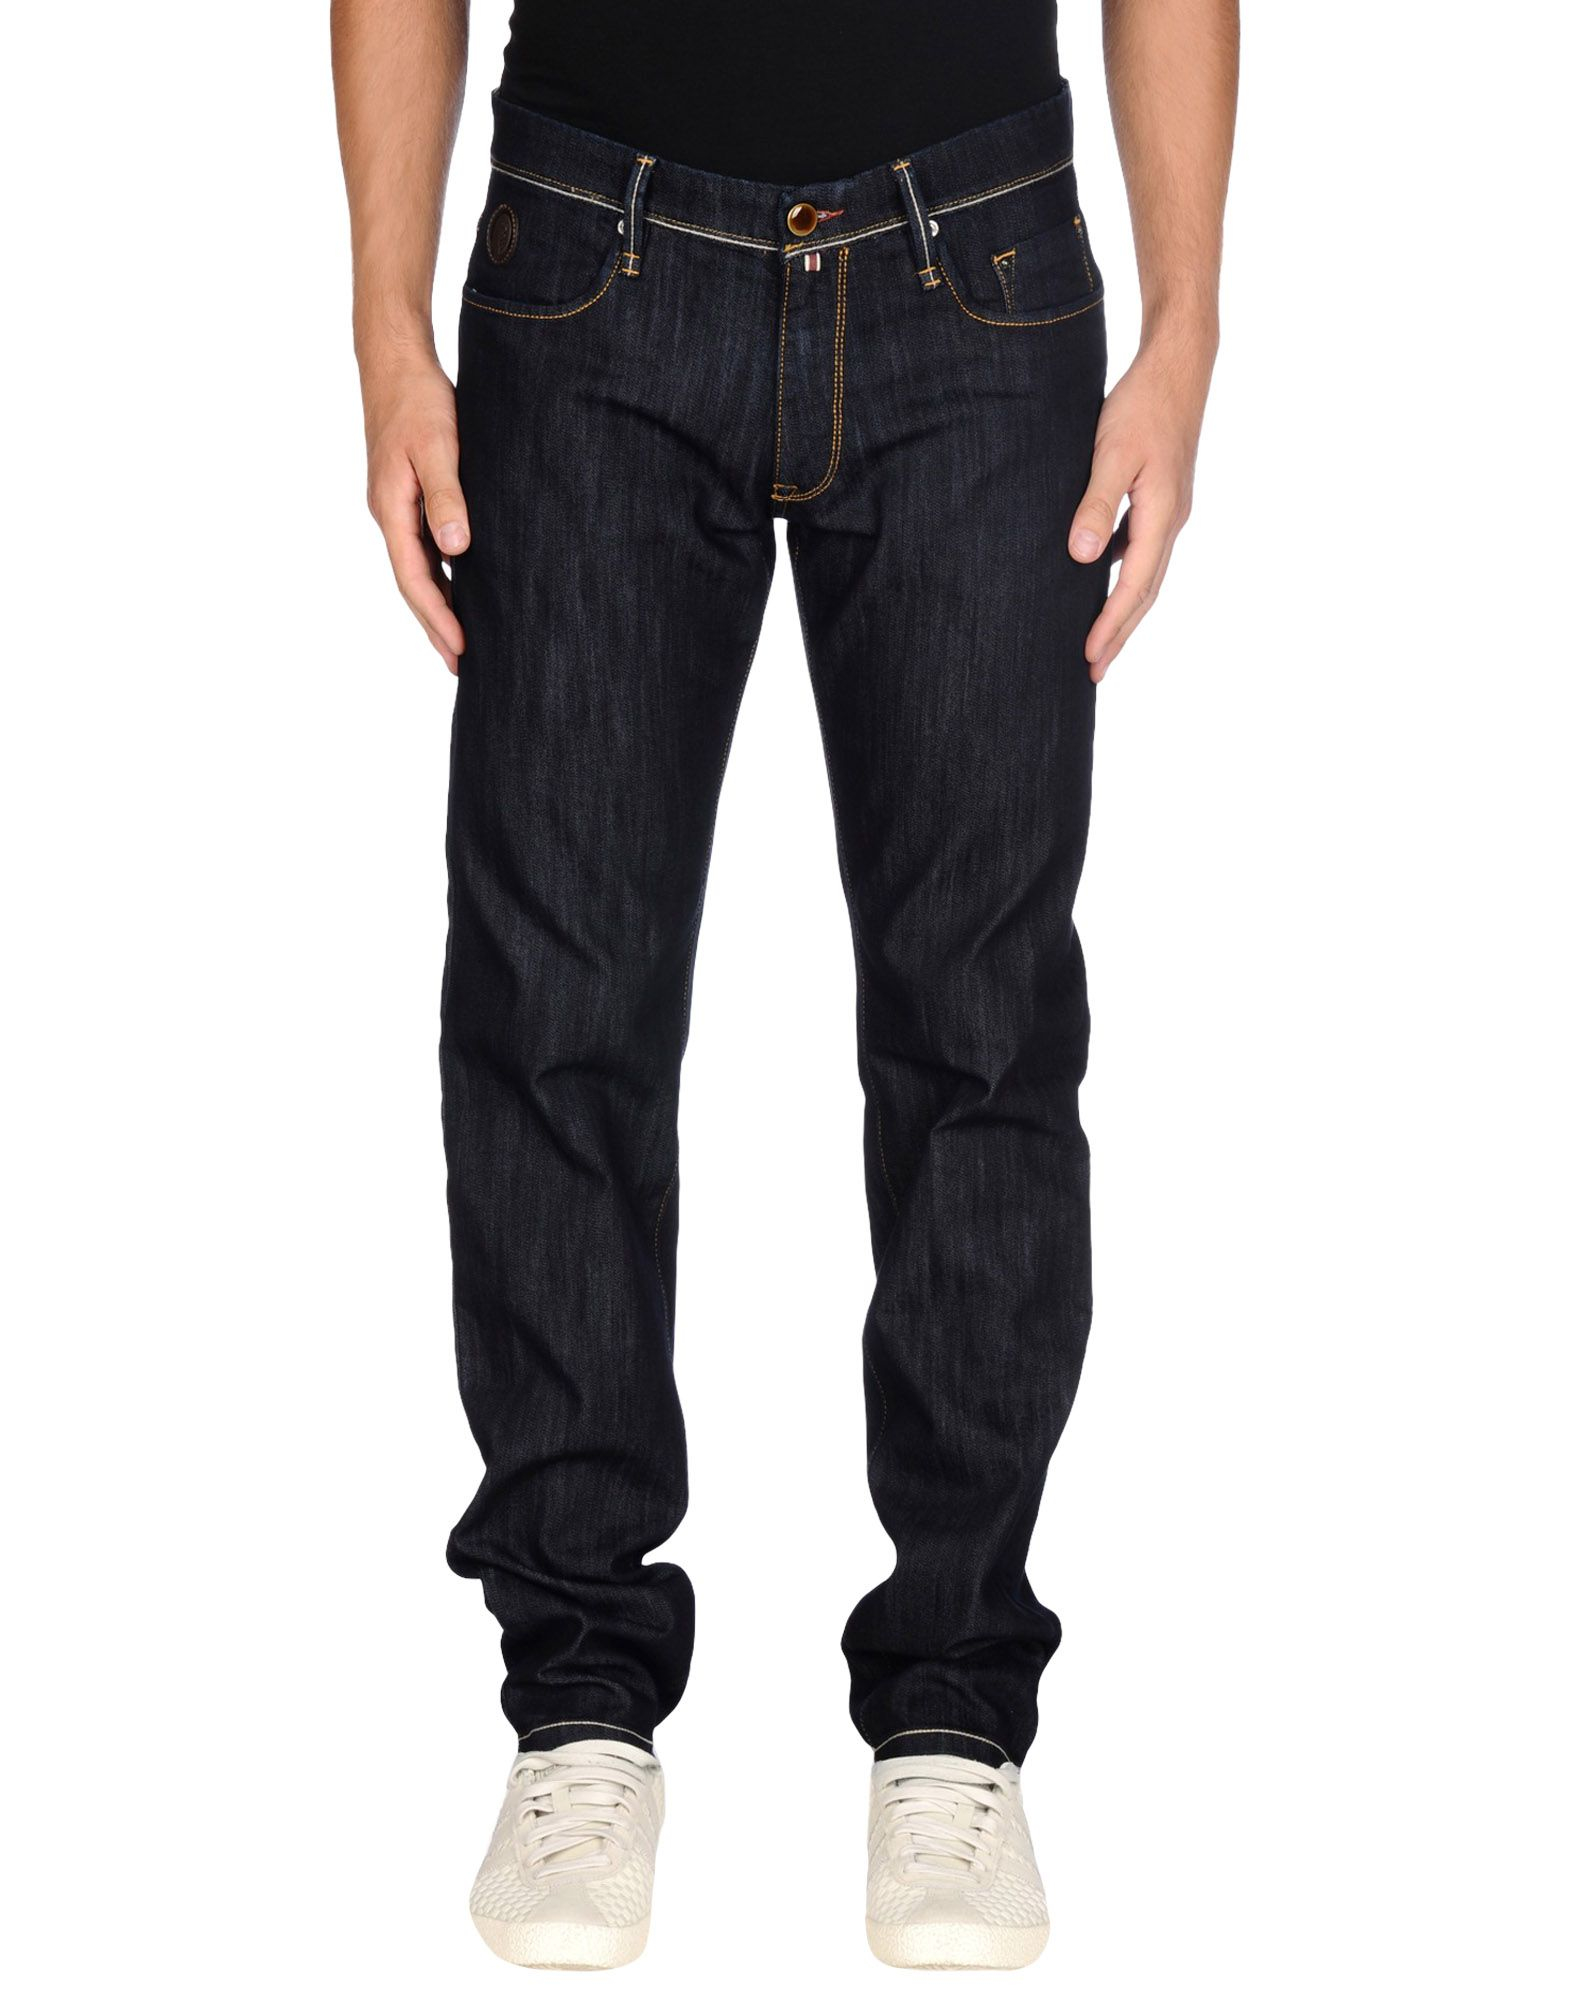 Found Deals For: TRUE JEANS. Trending Deals. Hot deal. 37% Off Types: Electronics, Toys, Fashion, Home Improvement, Power tools, Sports equipment.